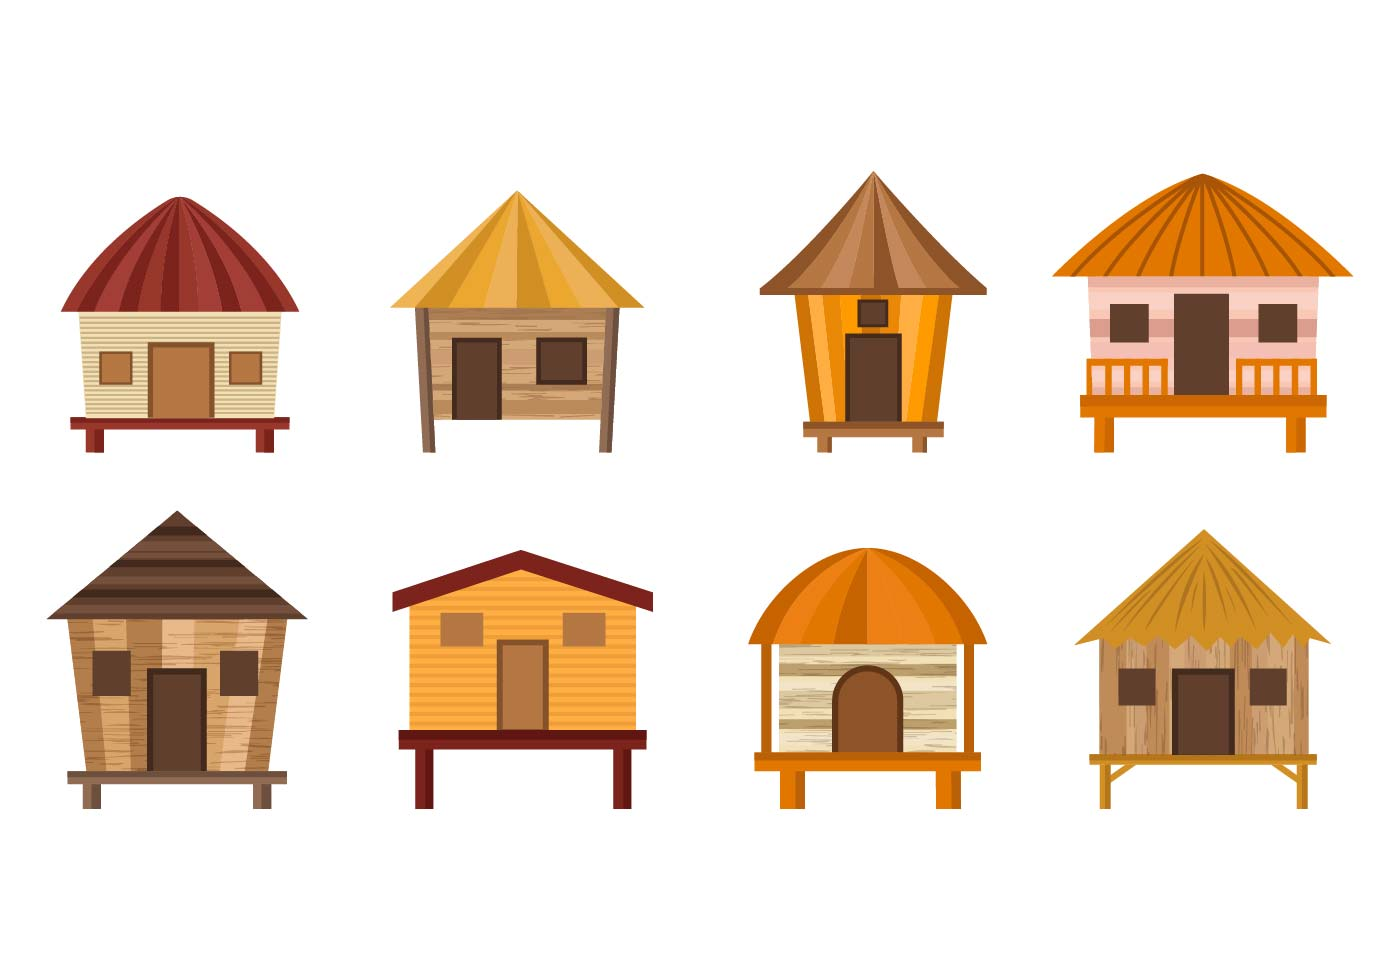 Bungalow Free Vector Art - (7523 Free Downloads)